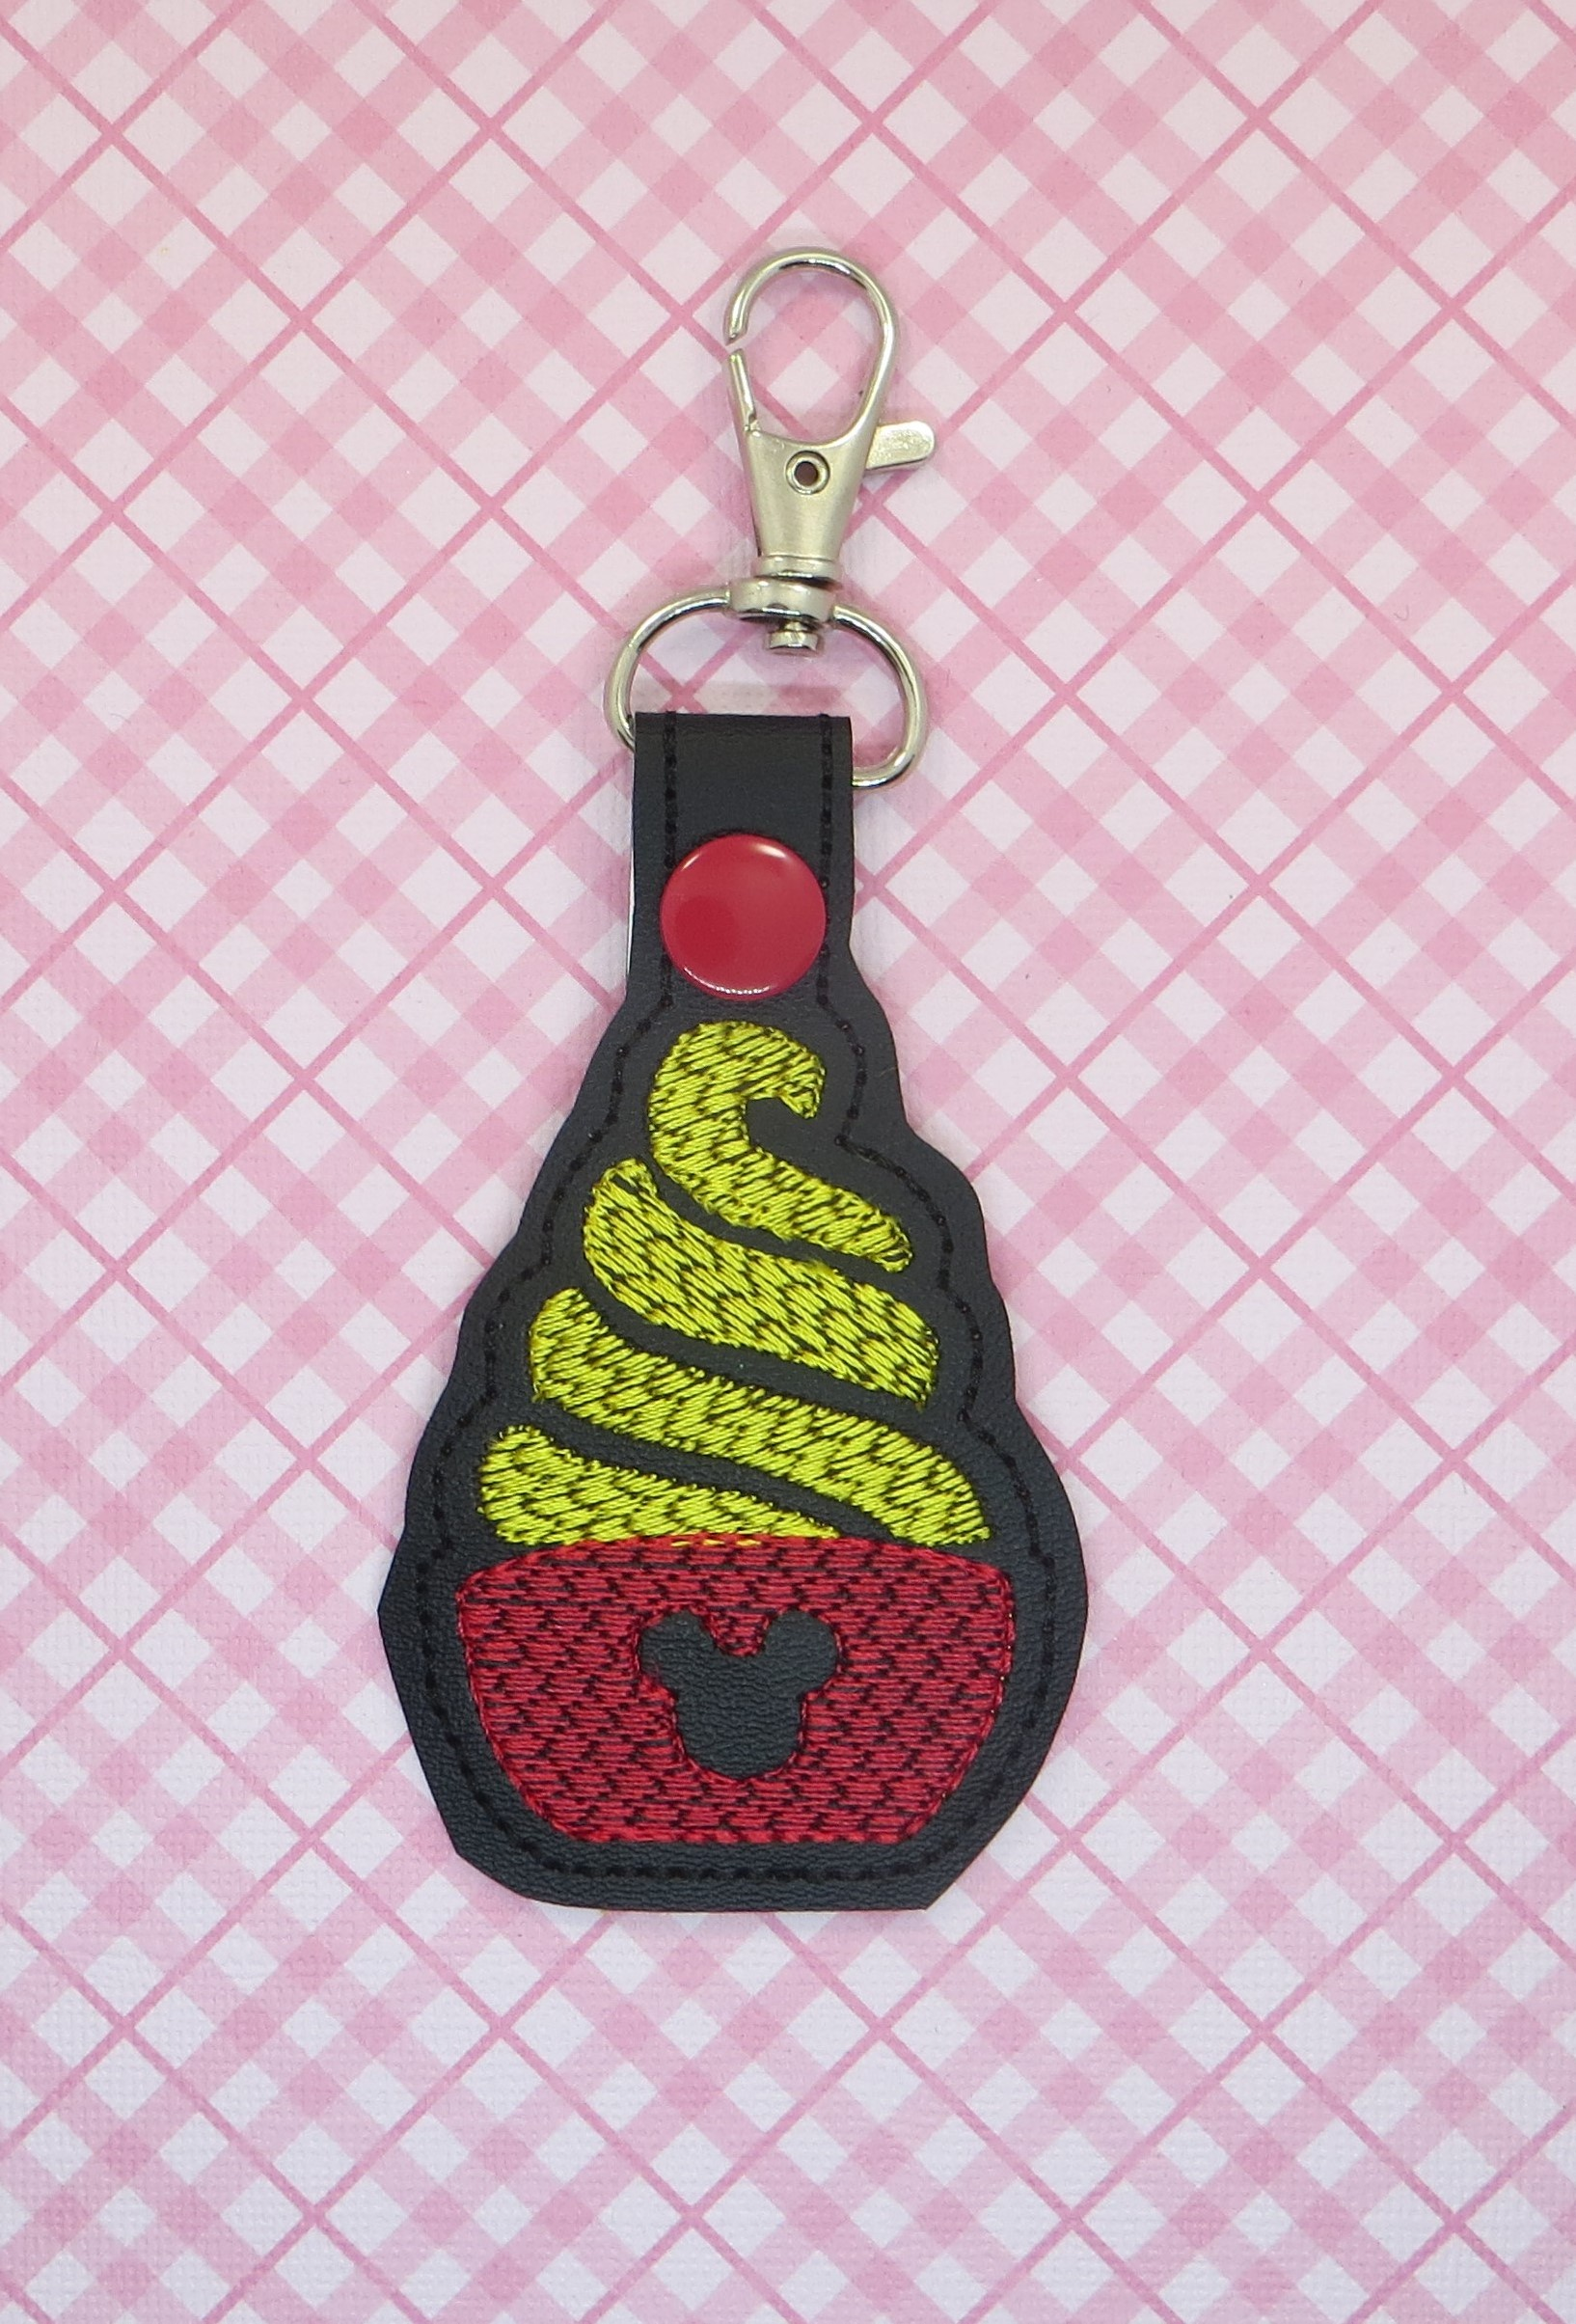 Mouse Whipped Dessert Snaptab Keyfob Embroidery Design (SKETCHY)